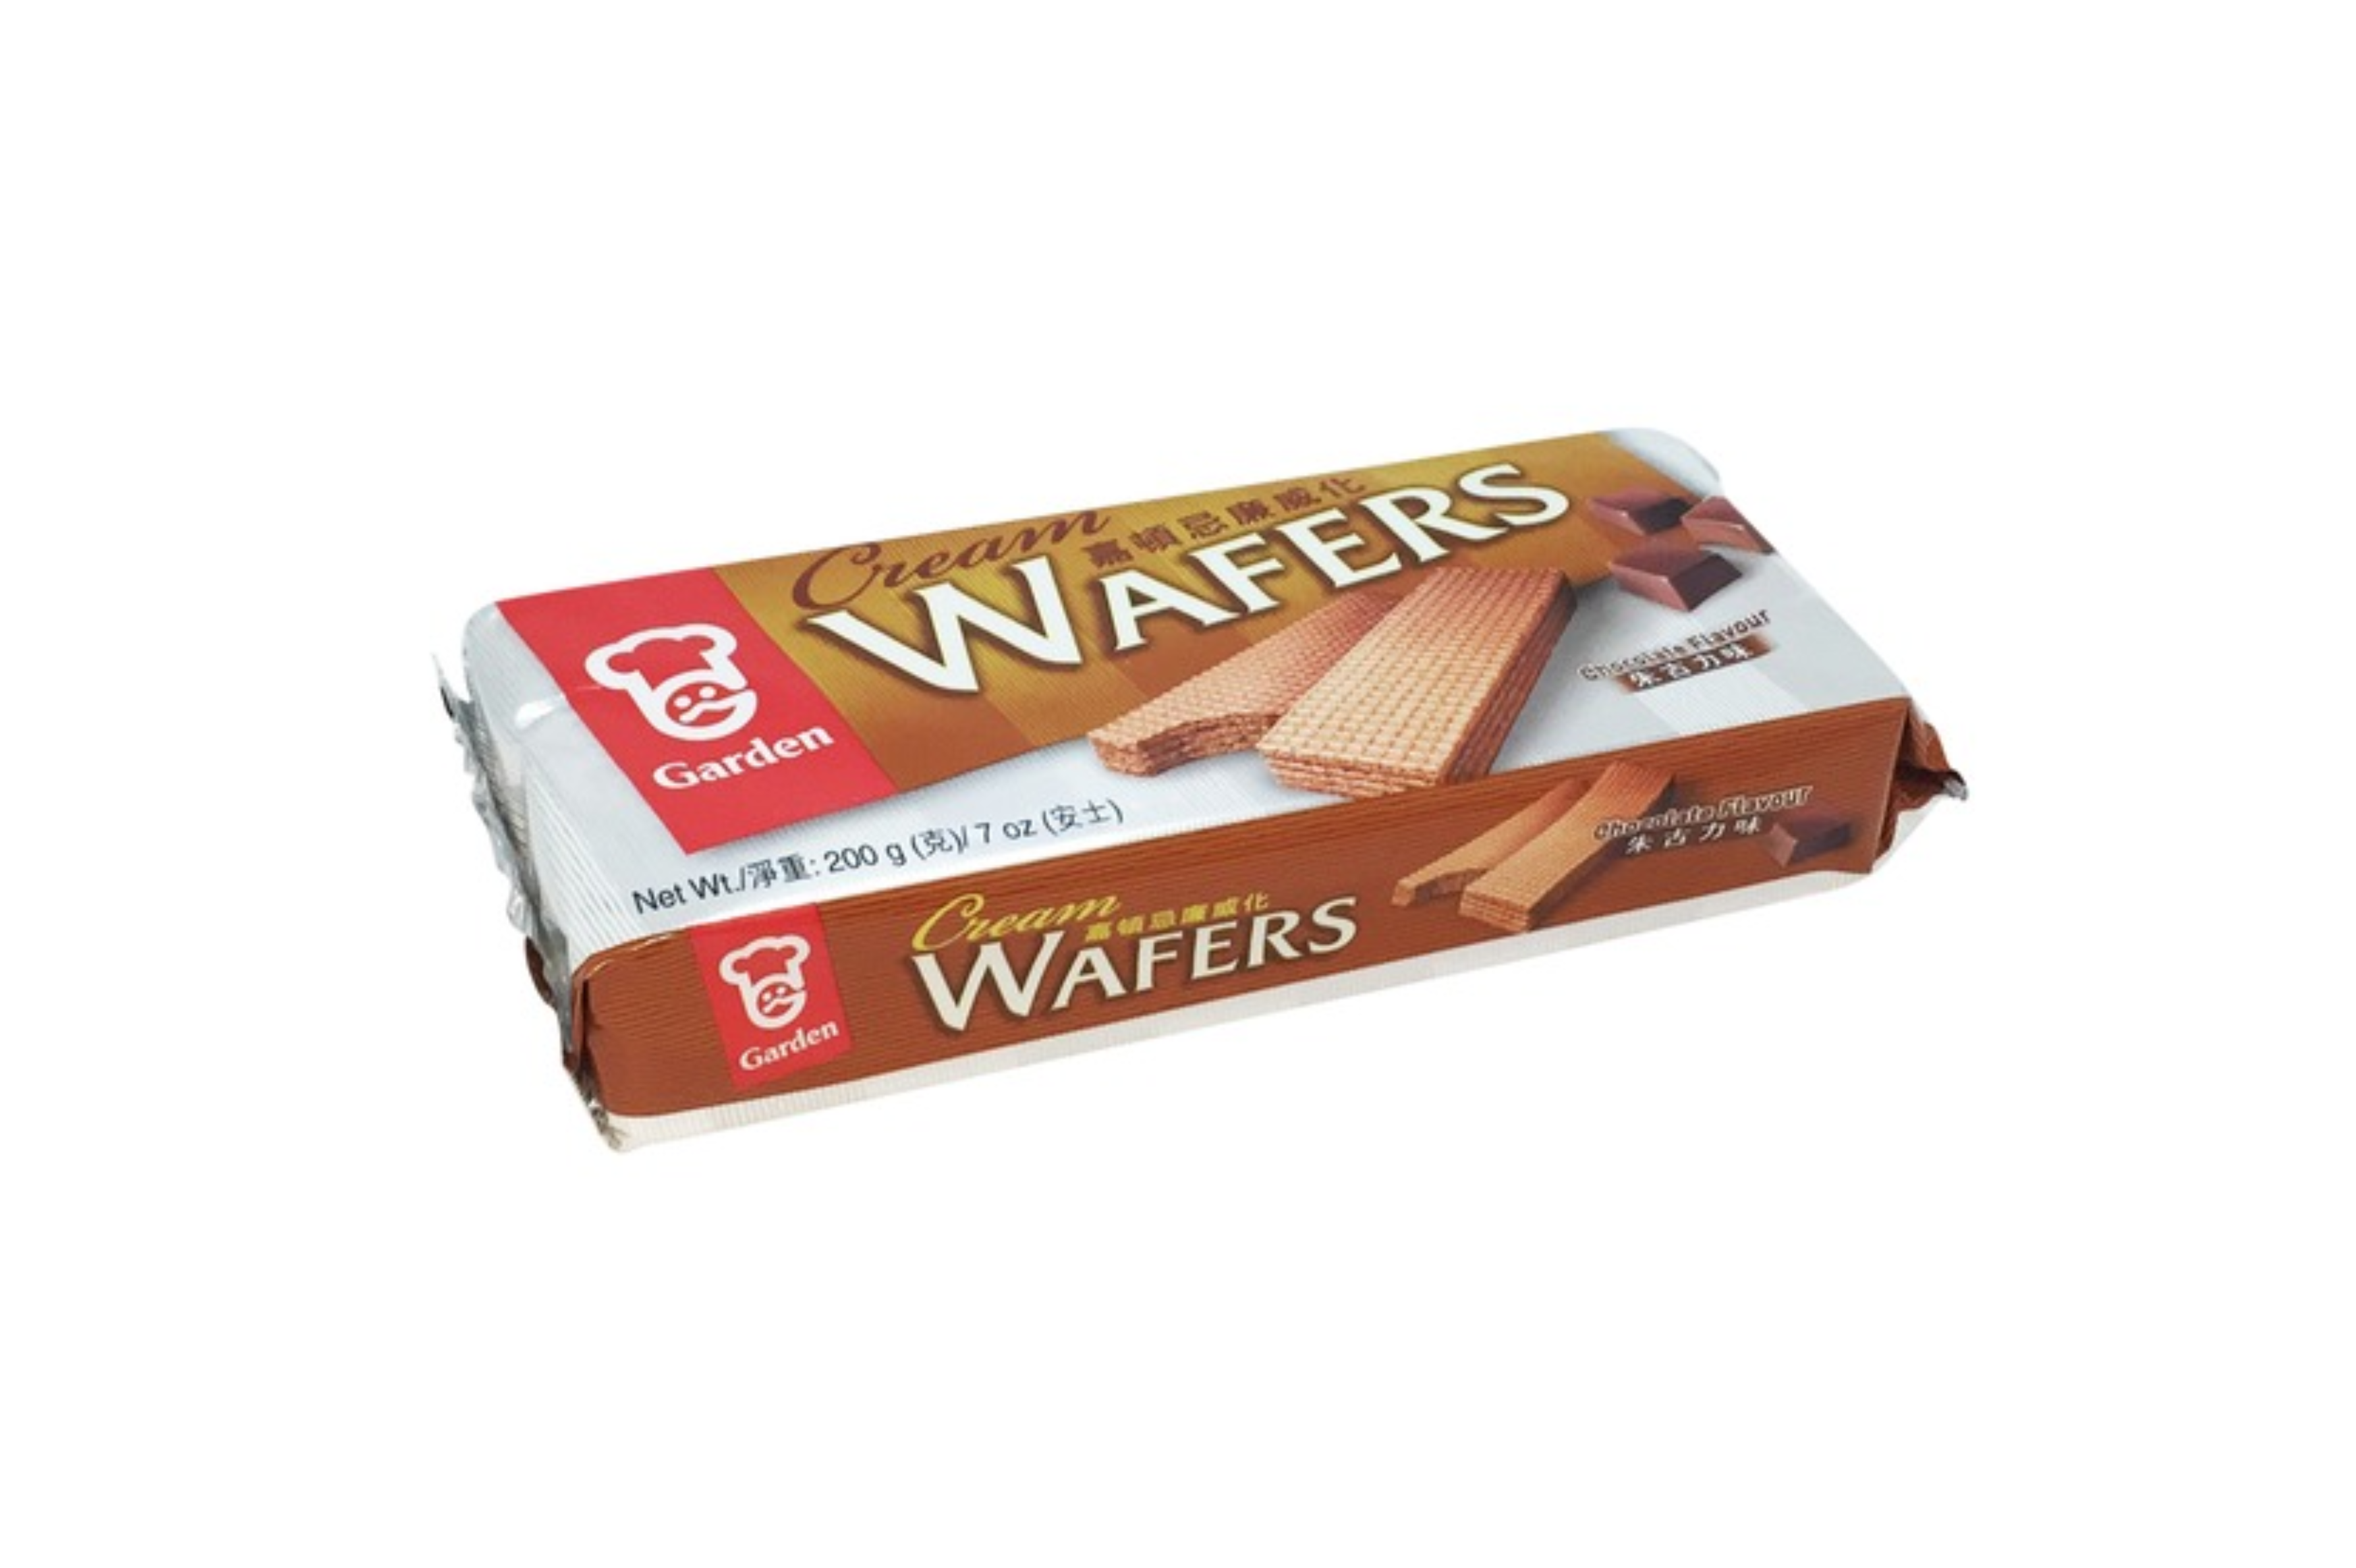 Cream wafers chocolate flavour